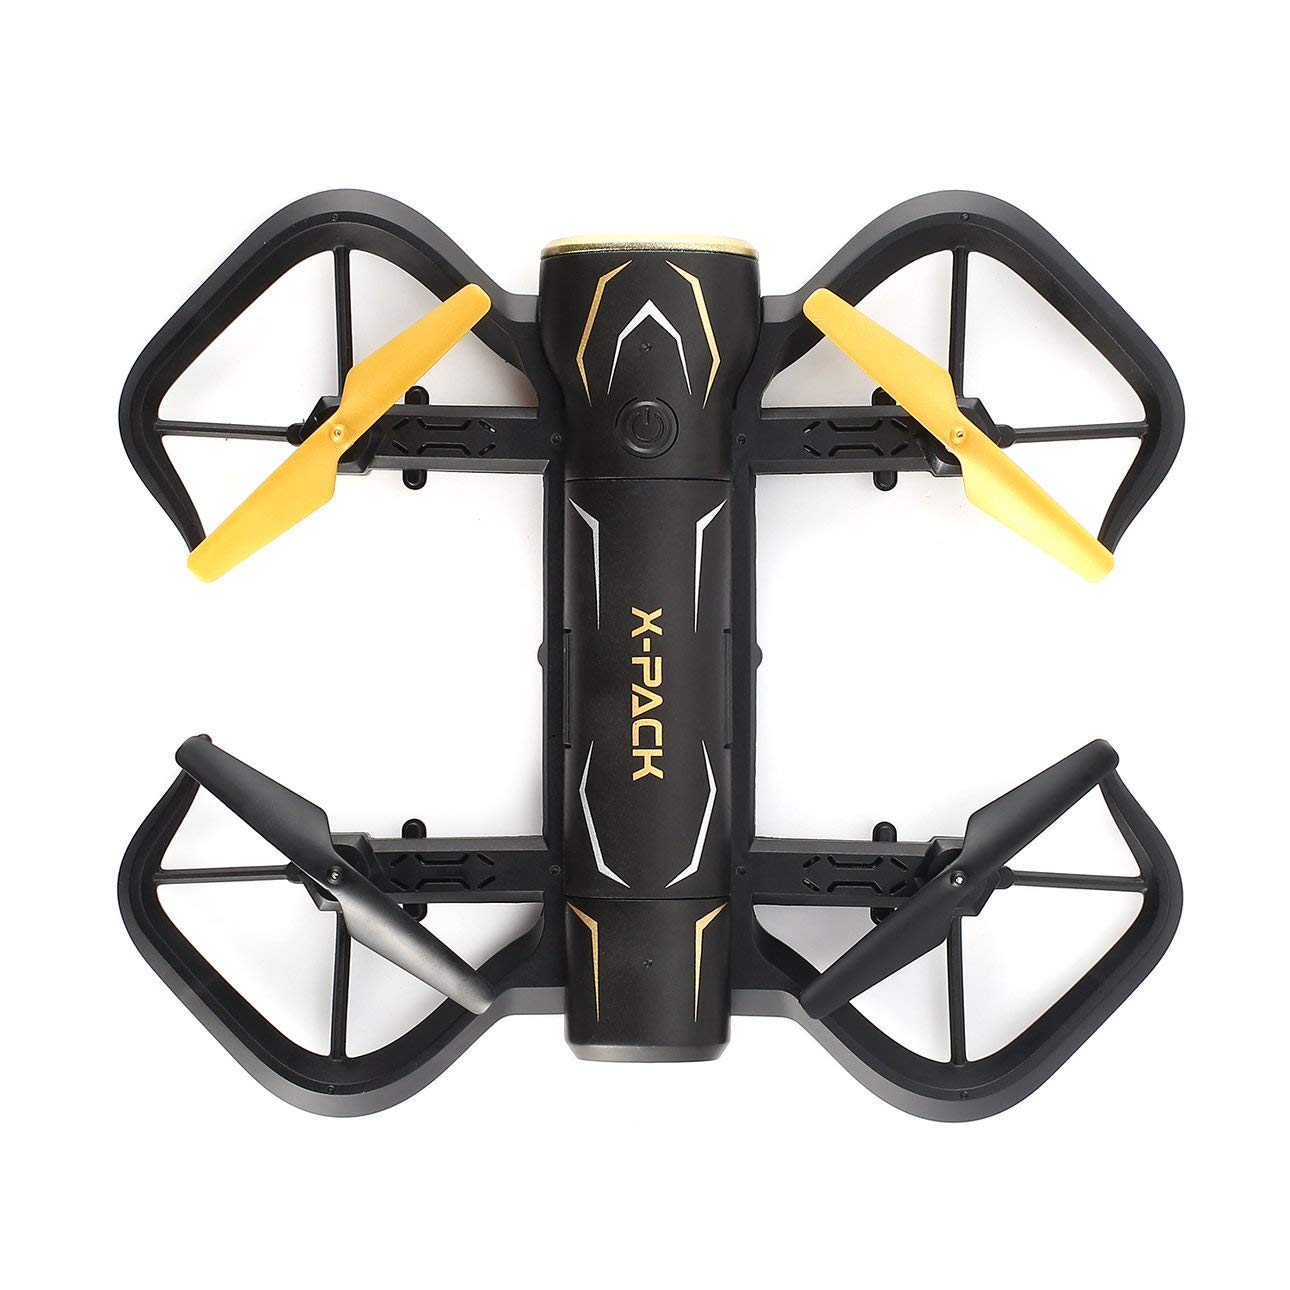 Mazur Attop X-PACK5 Drone Smart Quadcopter Pliable RC avec ...